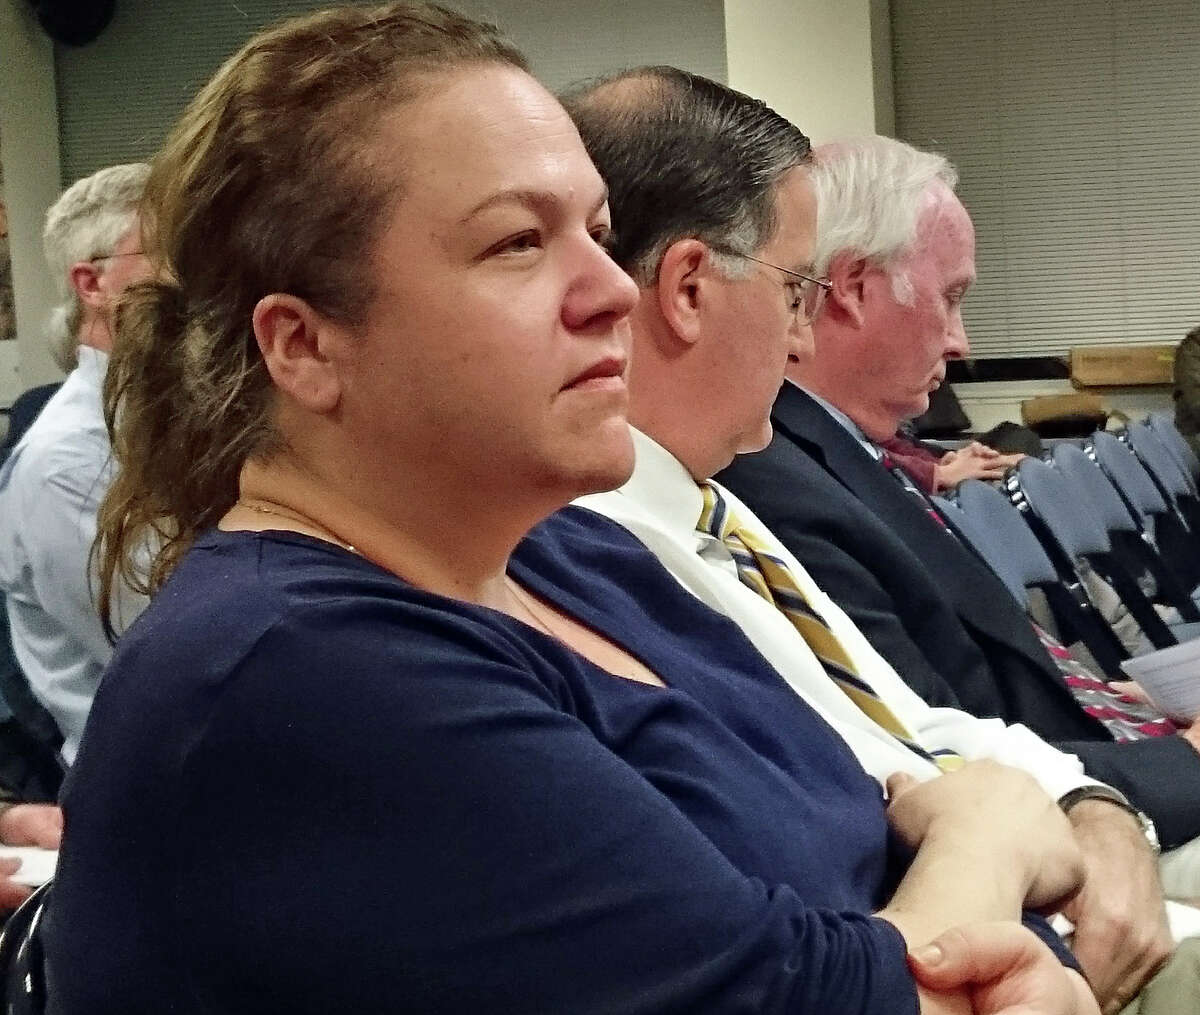 Board of Education member Trish Pytko was on hand, along with Supt. of Schools David Title, and Phil Dwyer, school board chairman, for Monday's Representative Town Meeting.